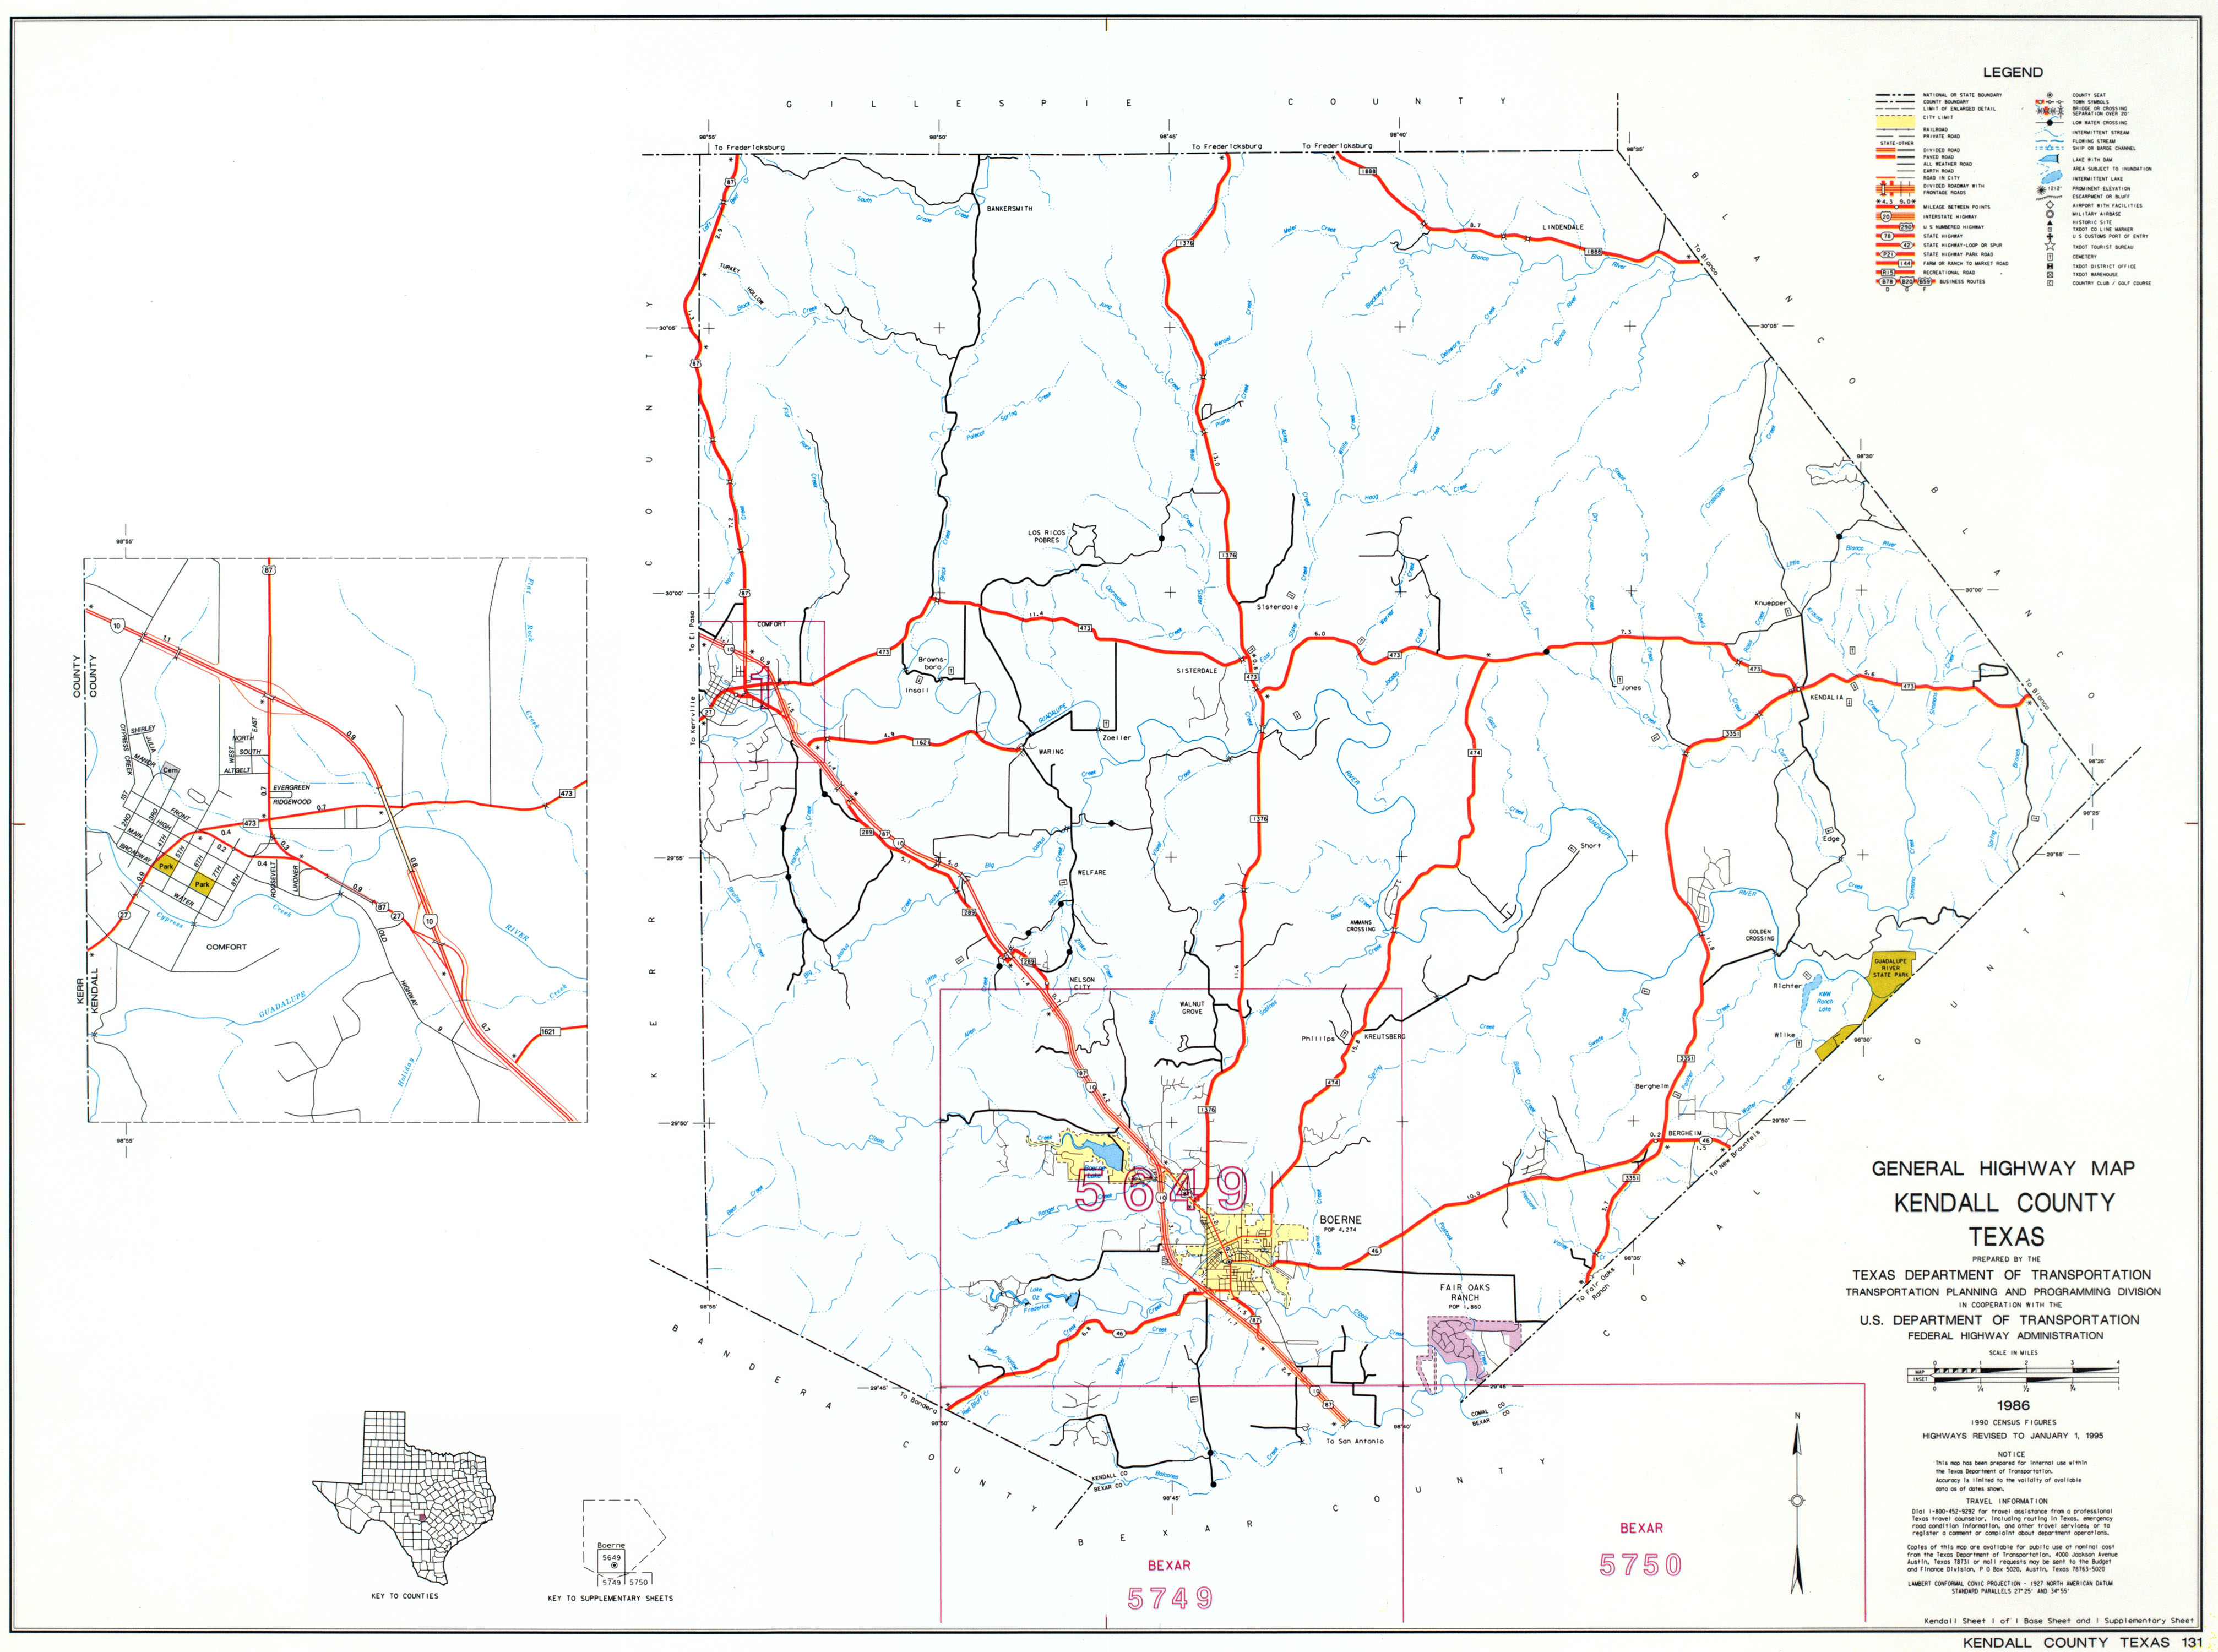 Kendall West Utility Boerne Texas Maps